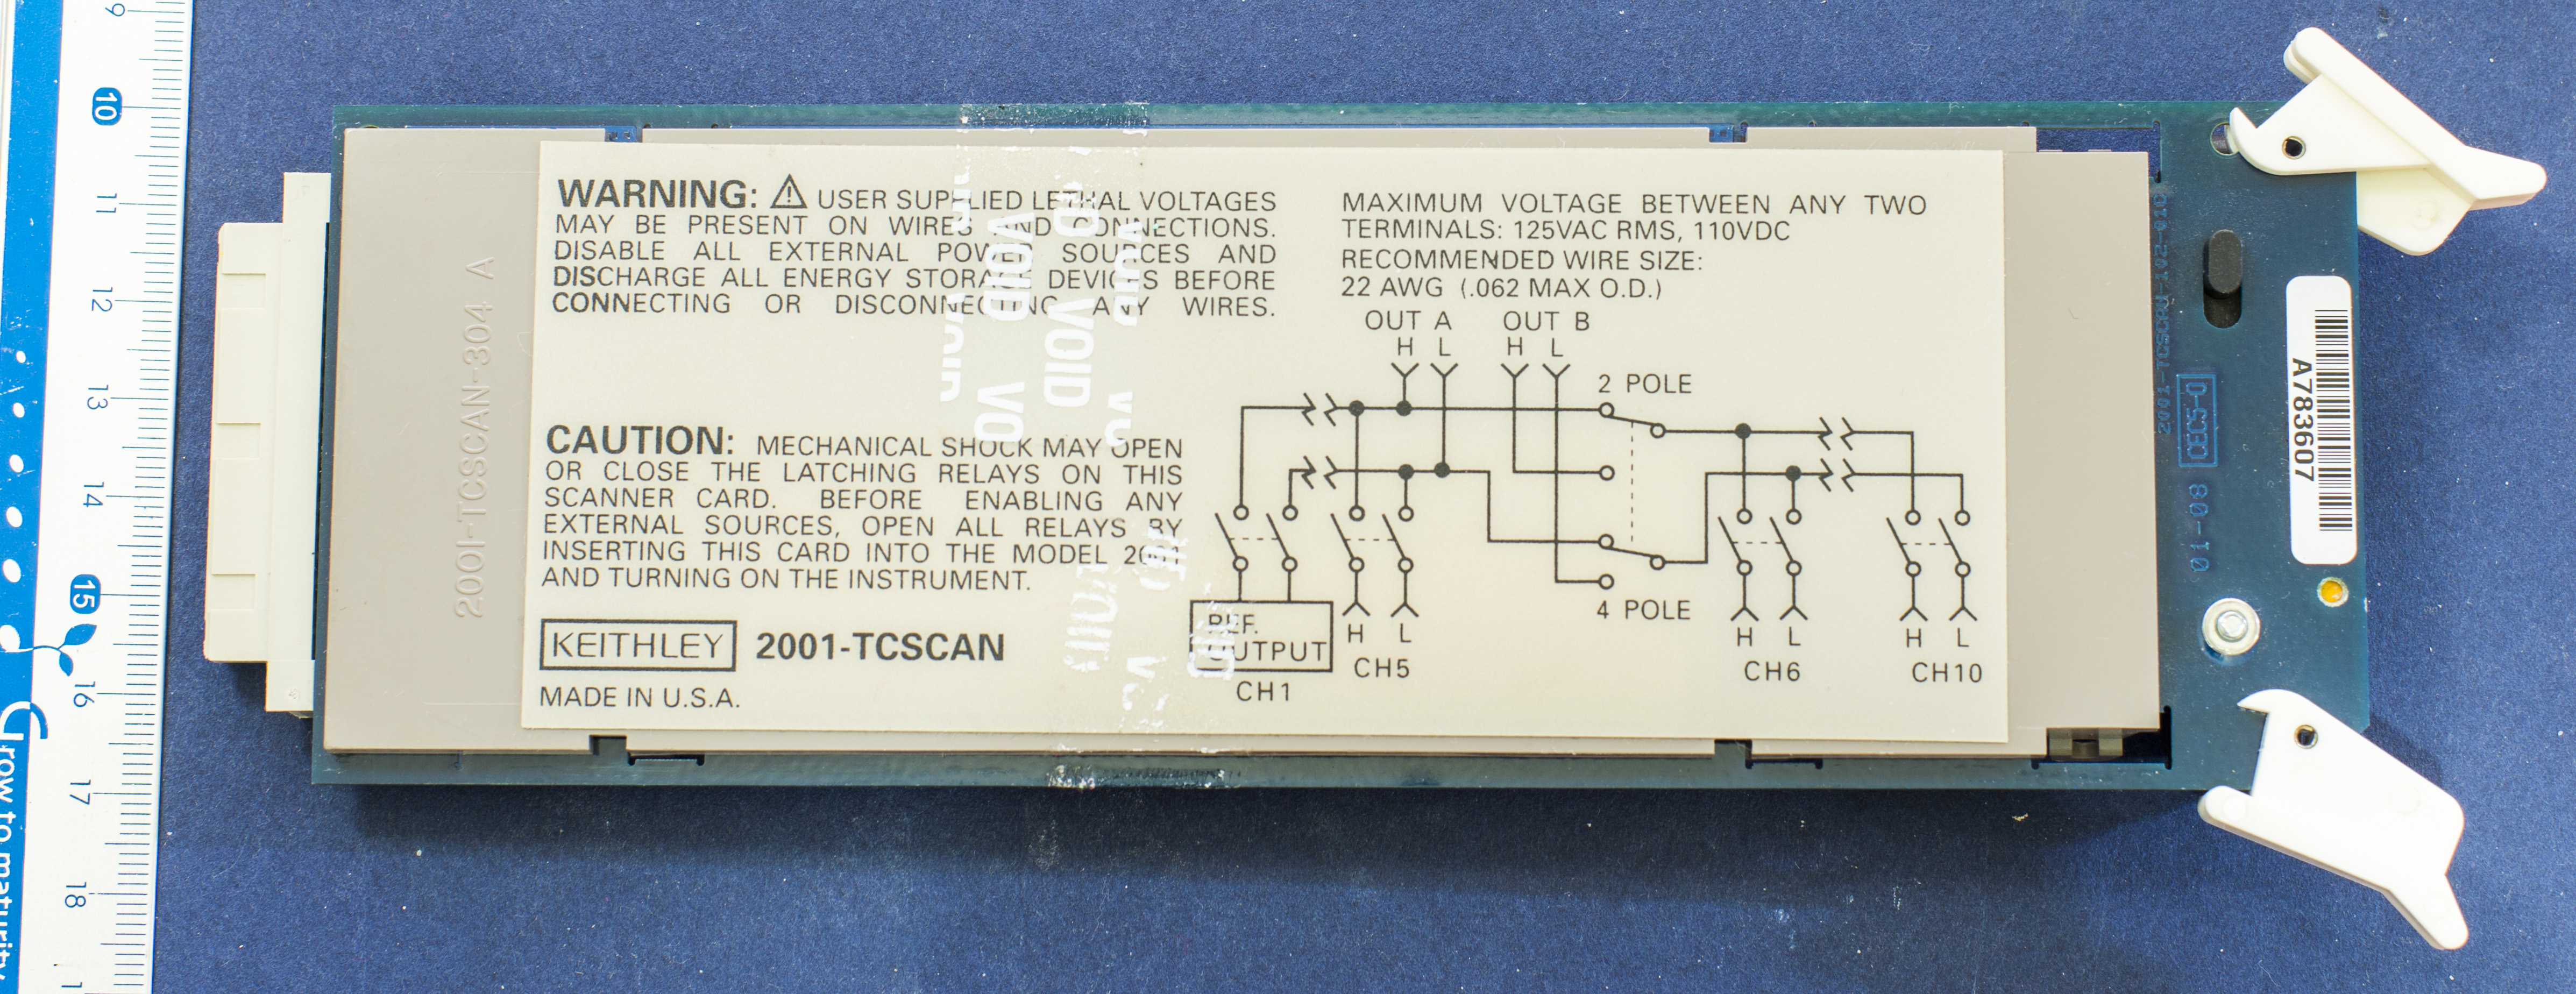 xDevs.com | Review of Keithley 2001-TCSCAN scanner card for 200x ...